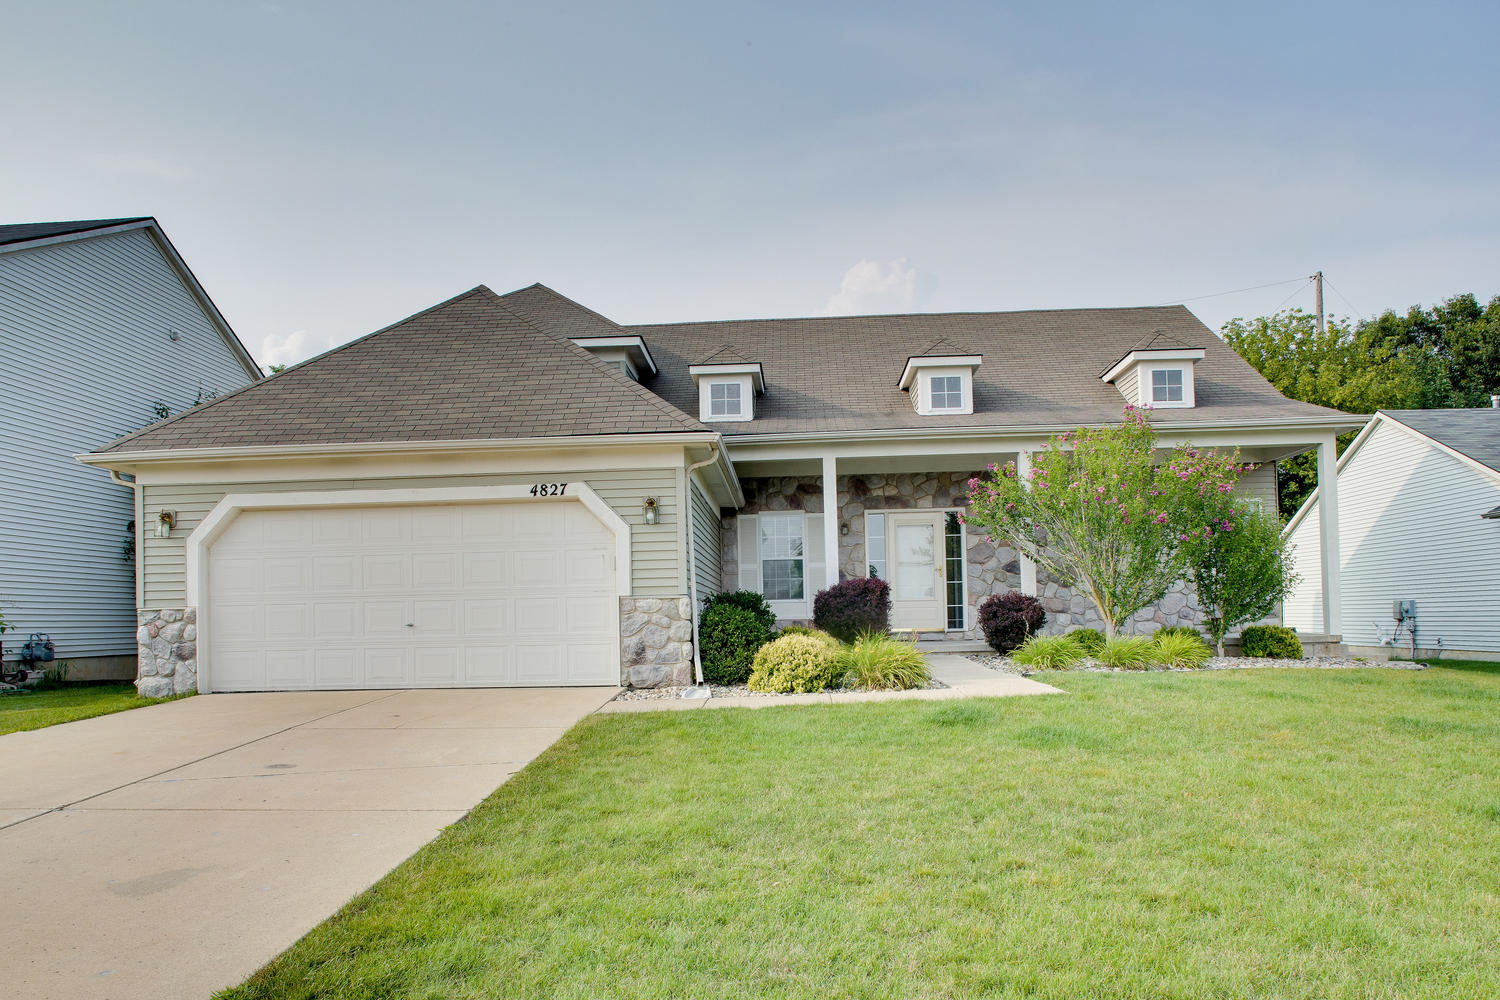 4827 Hickory Pointe, Ypsilanti | Hickory Pointe Neighborhood